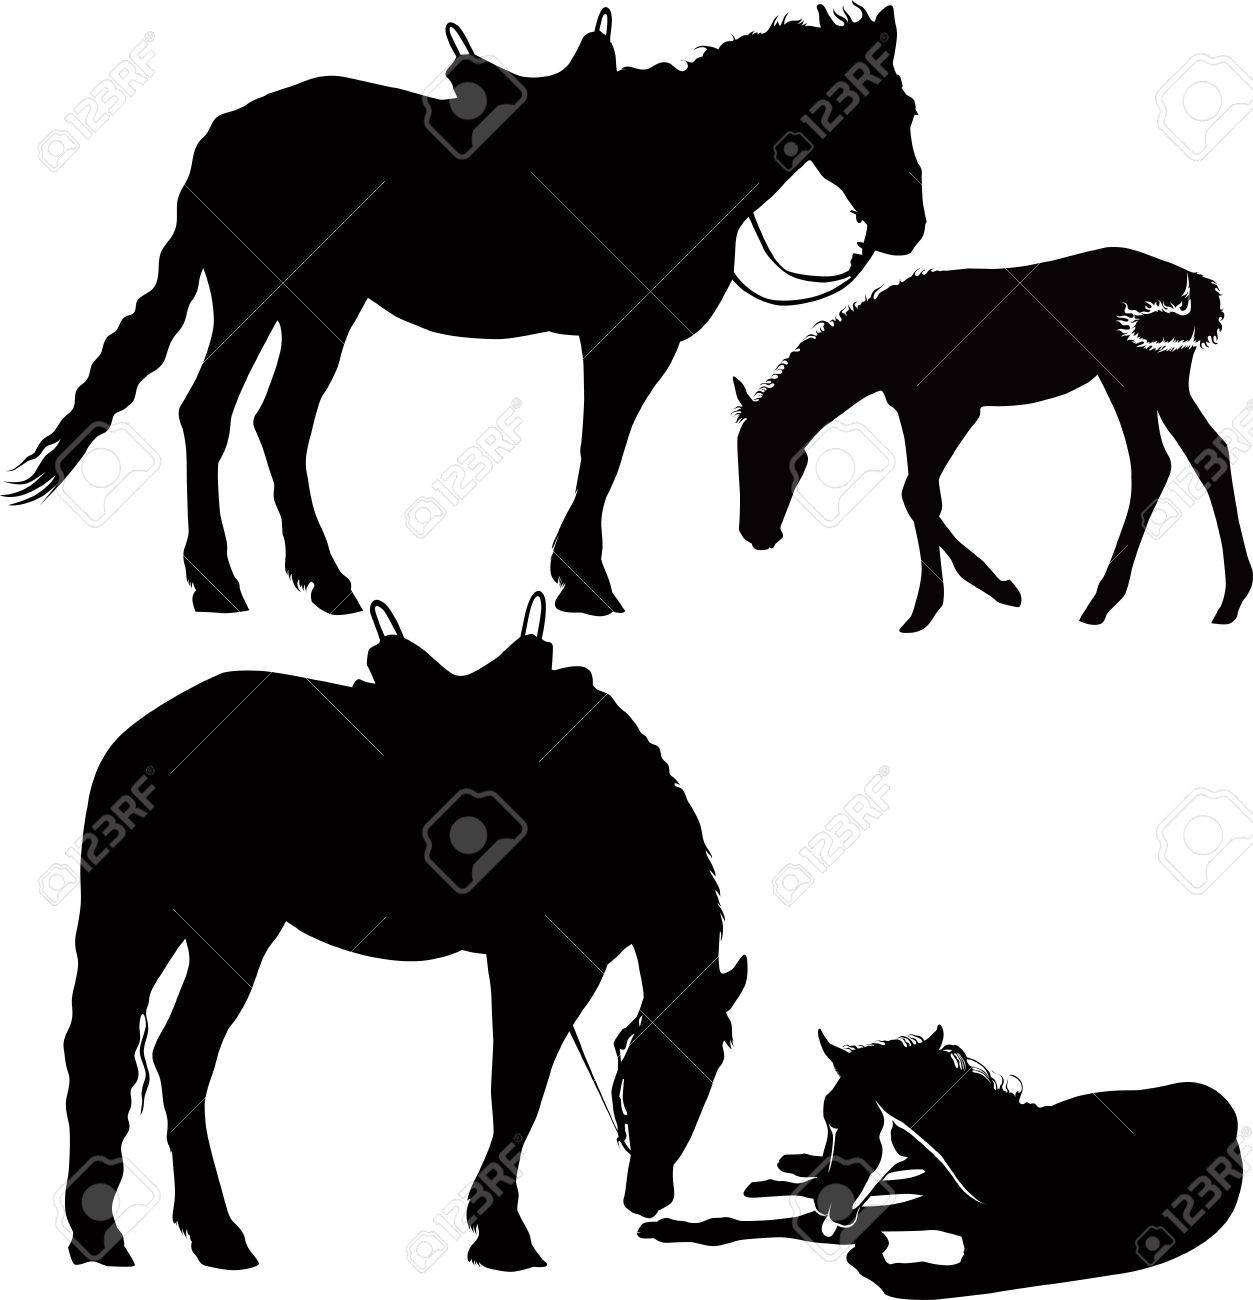 horses animals equestrian sport isolated on white background Stock Vector - 16573065